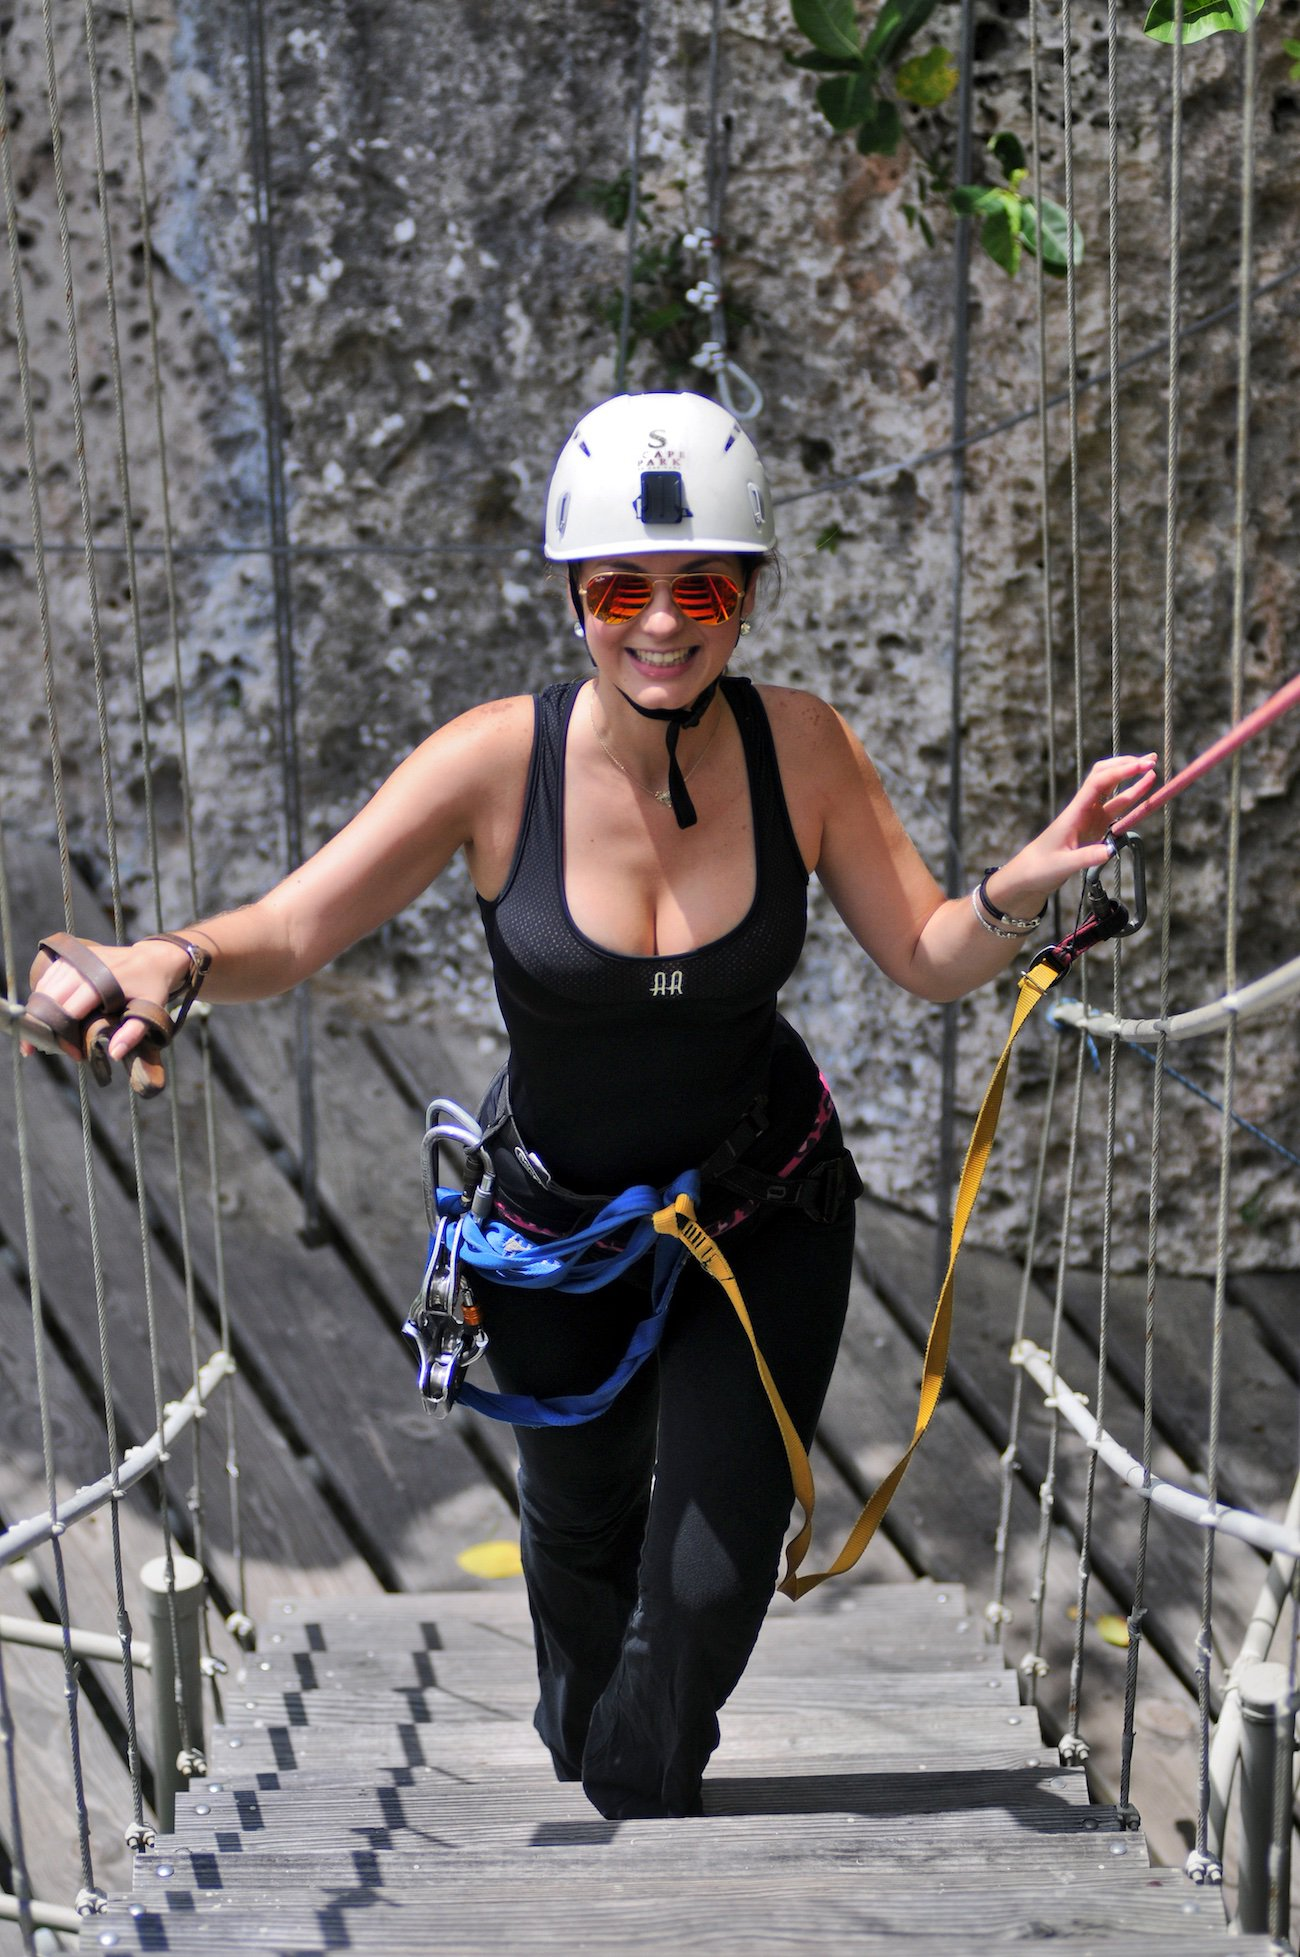 Zip Line Eco Adventure by Scape Park - Everything Punta Cana